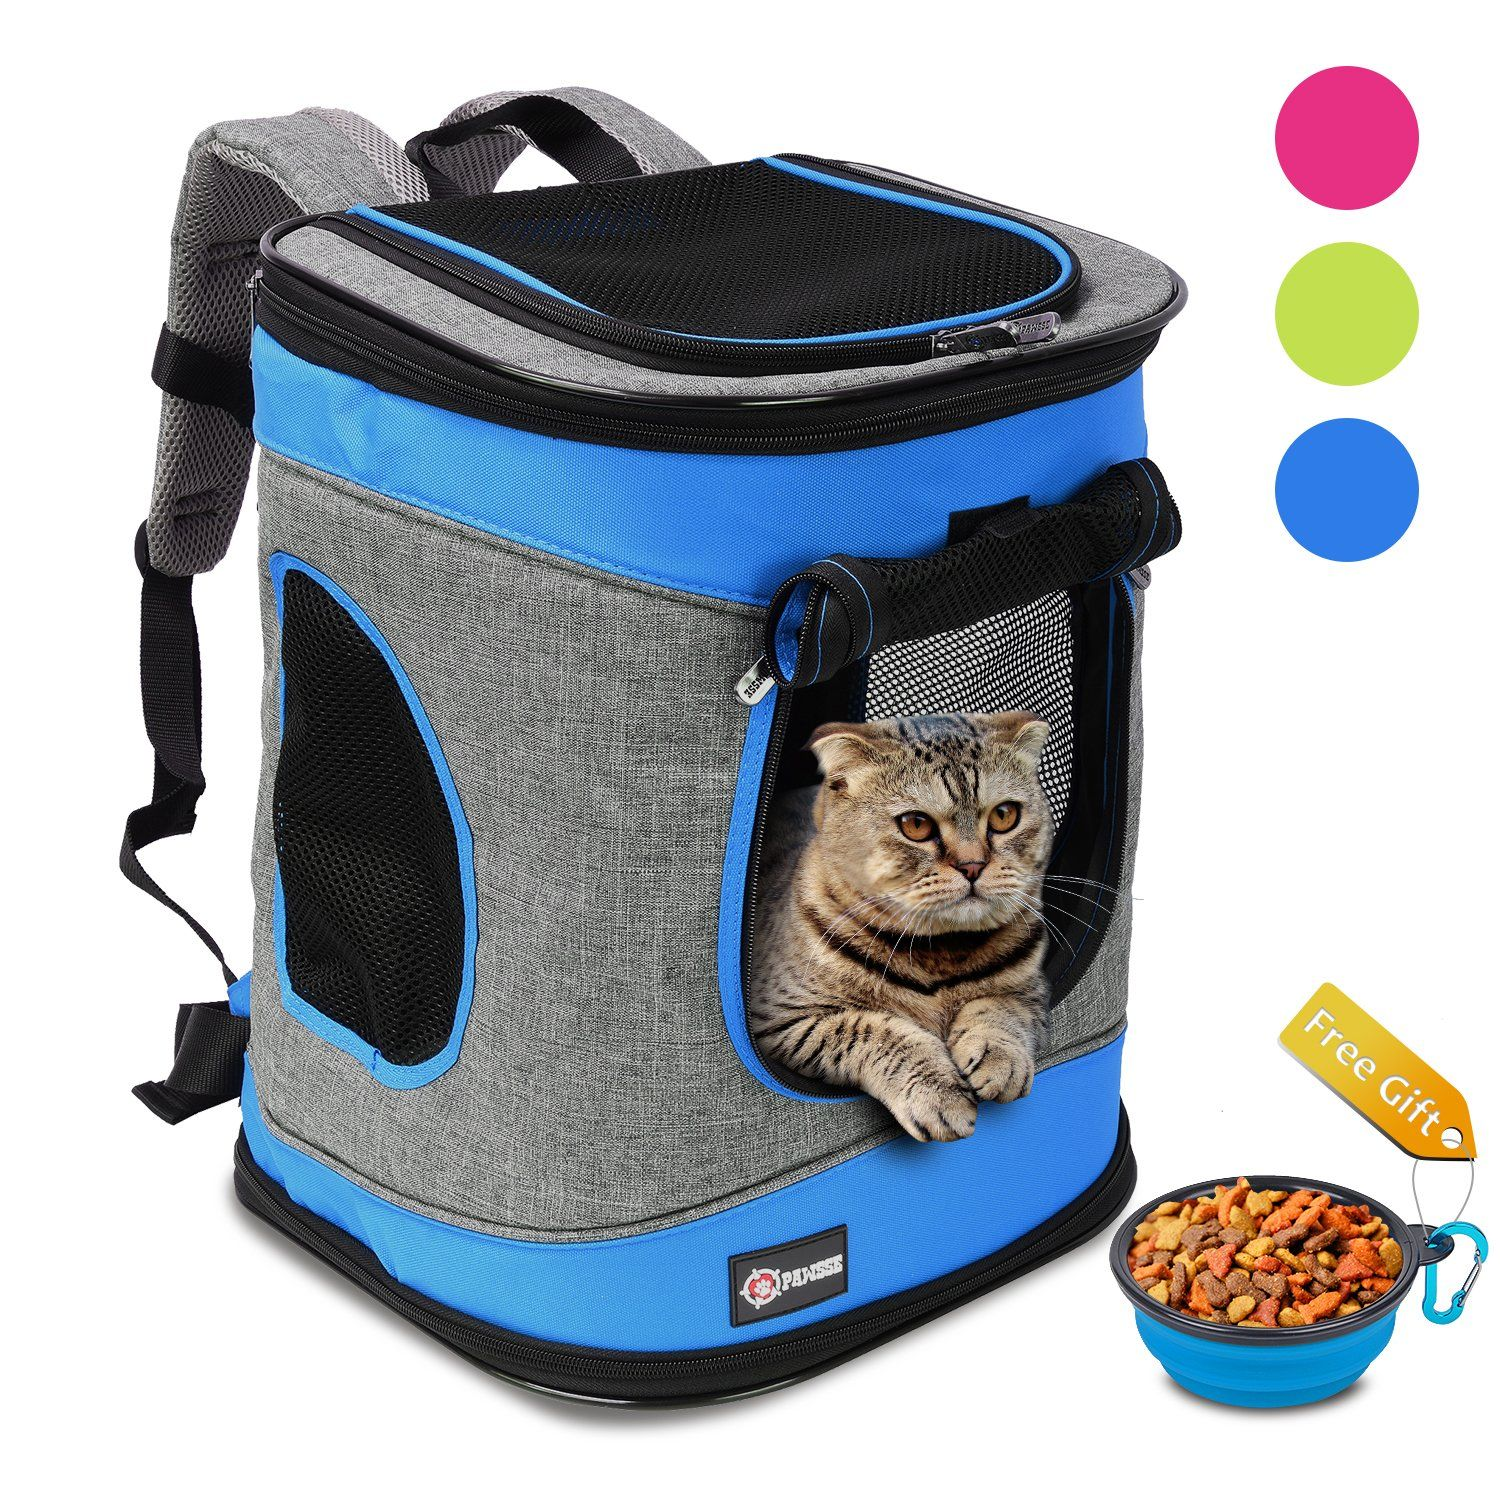 Pawsse Pet Carrier Backpack for Dogs and Cats up to 15 LBS